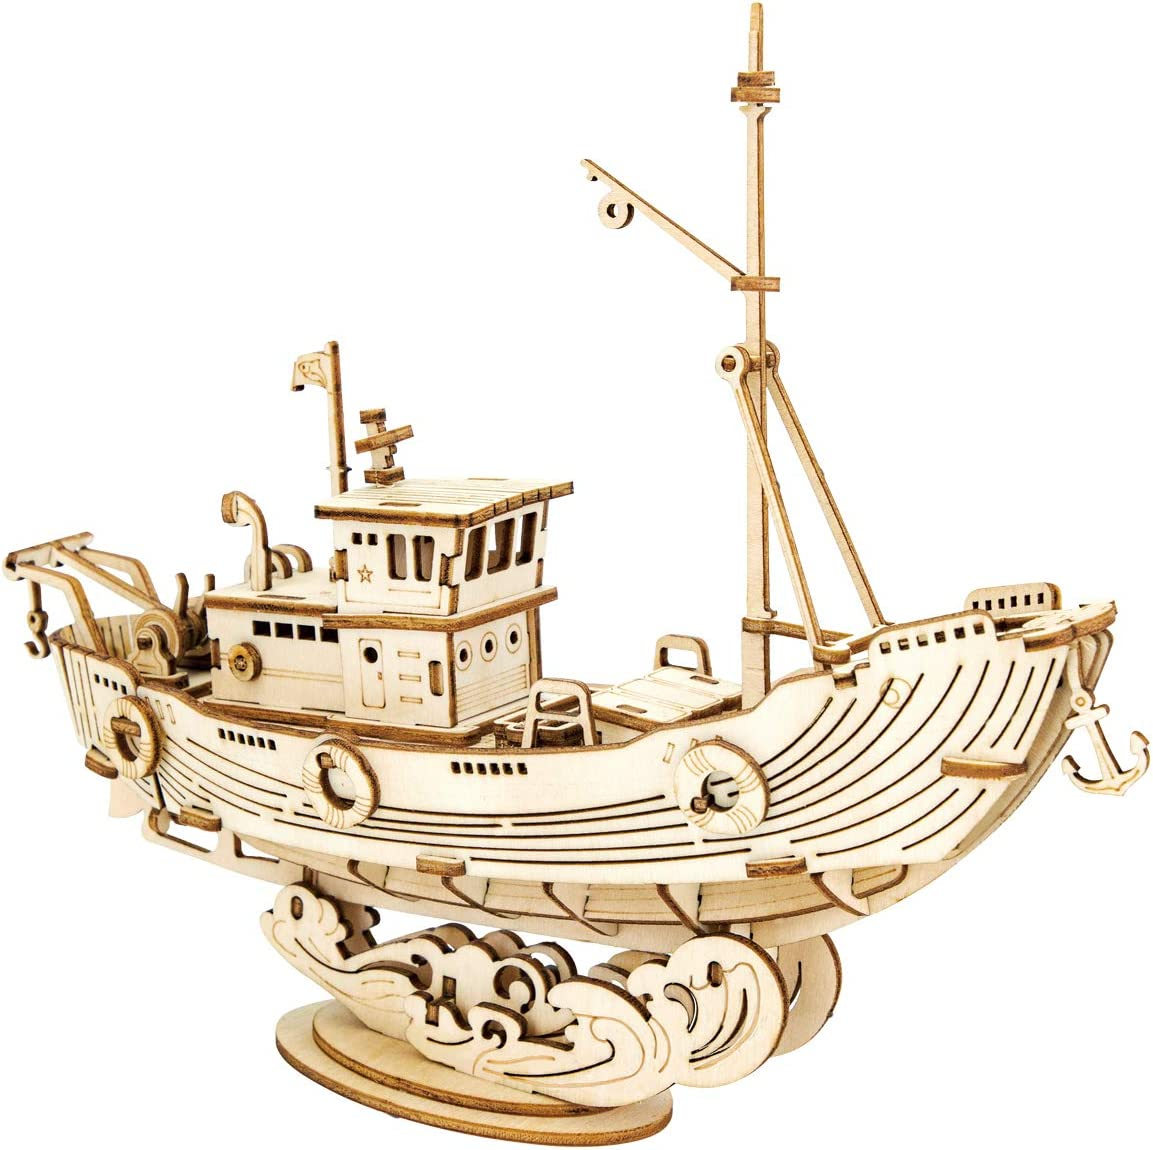 ROBOTIME 3D Wooden Puzzle for Kids and Adults Boat Building Kits Craft Brain Teaser DIY Kits for Children 8 Years Old and Up Fishing Ship